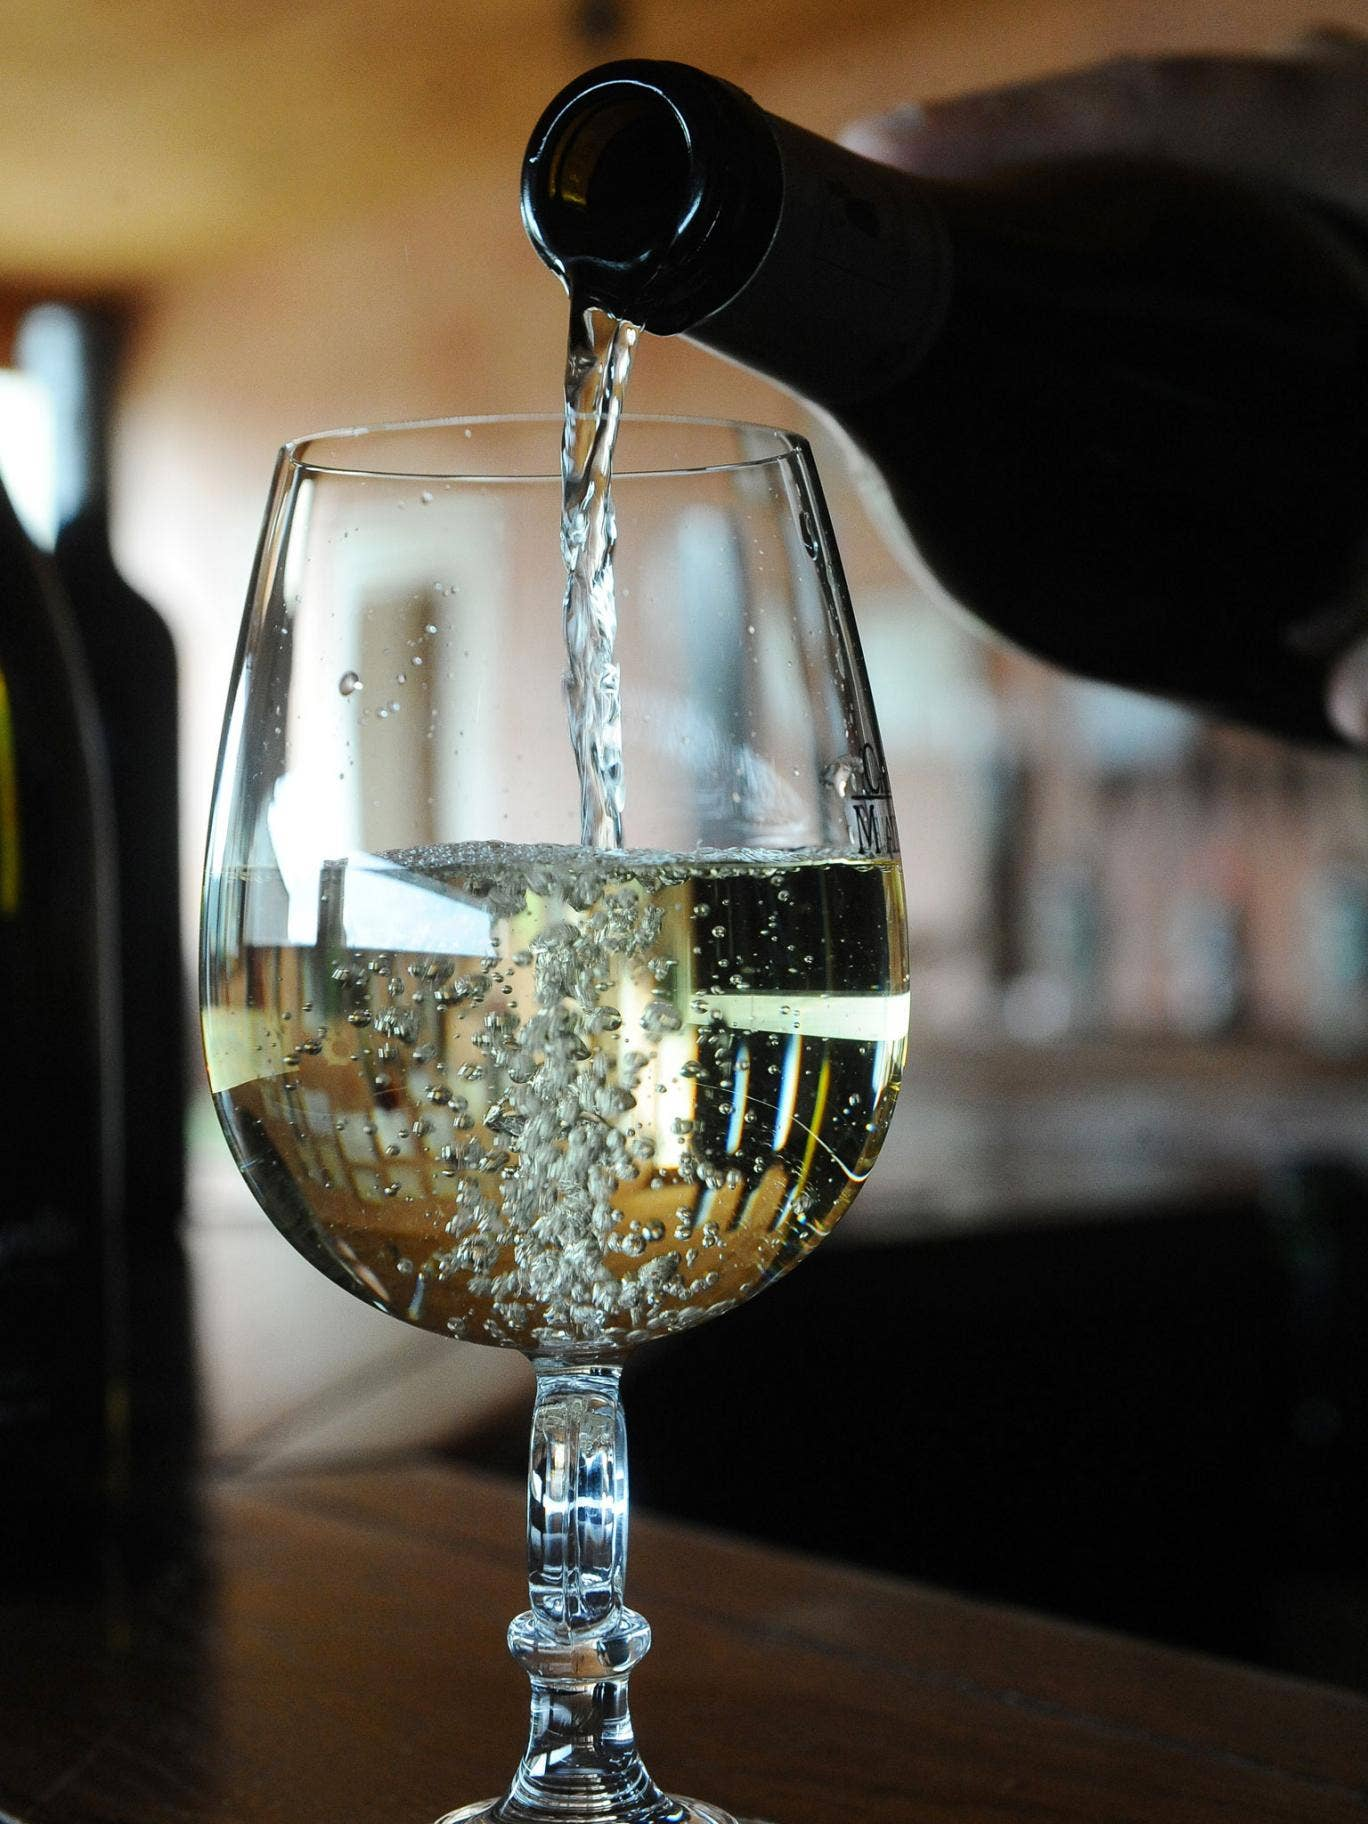 A survey of young wine drinkers has revealed that one in four pretends to know more than they actually do